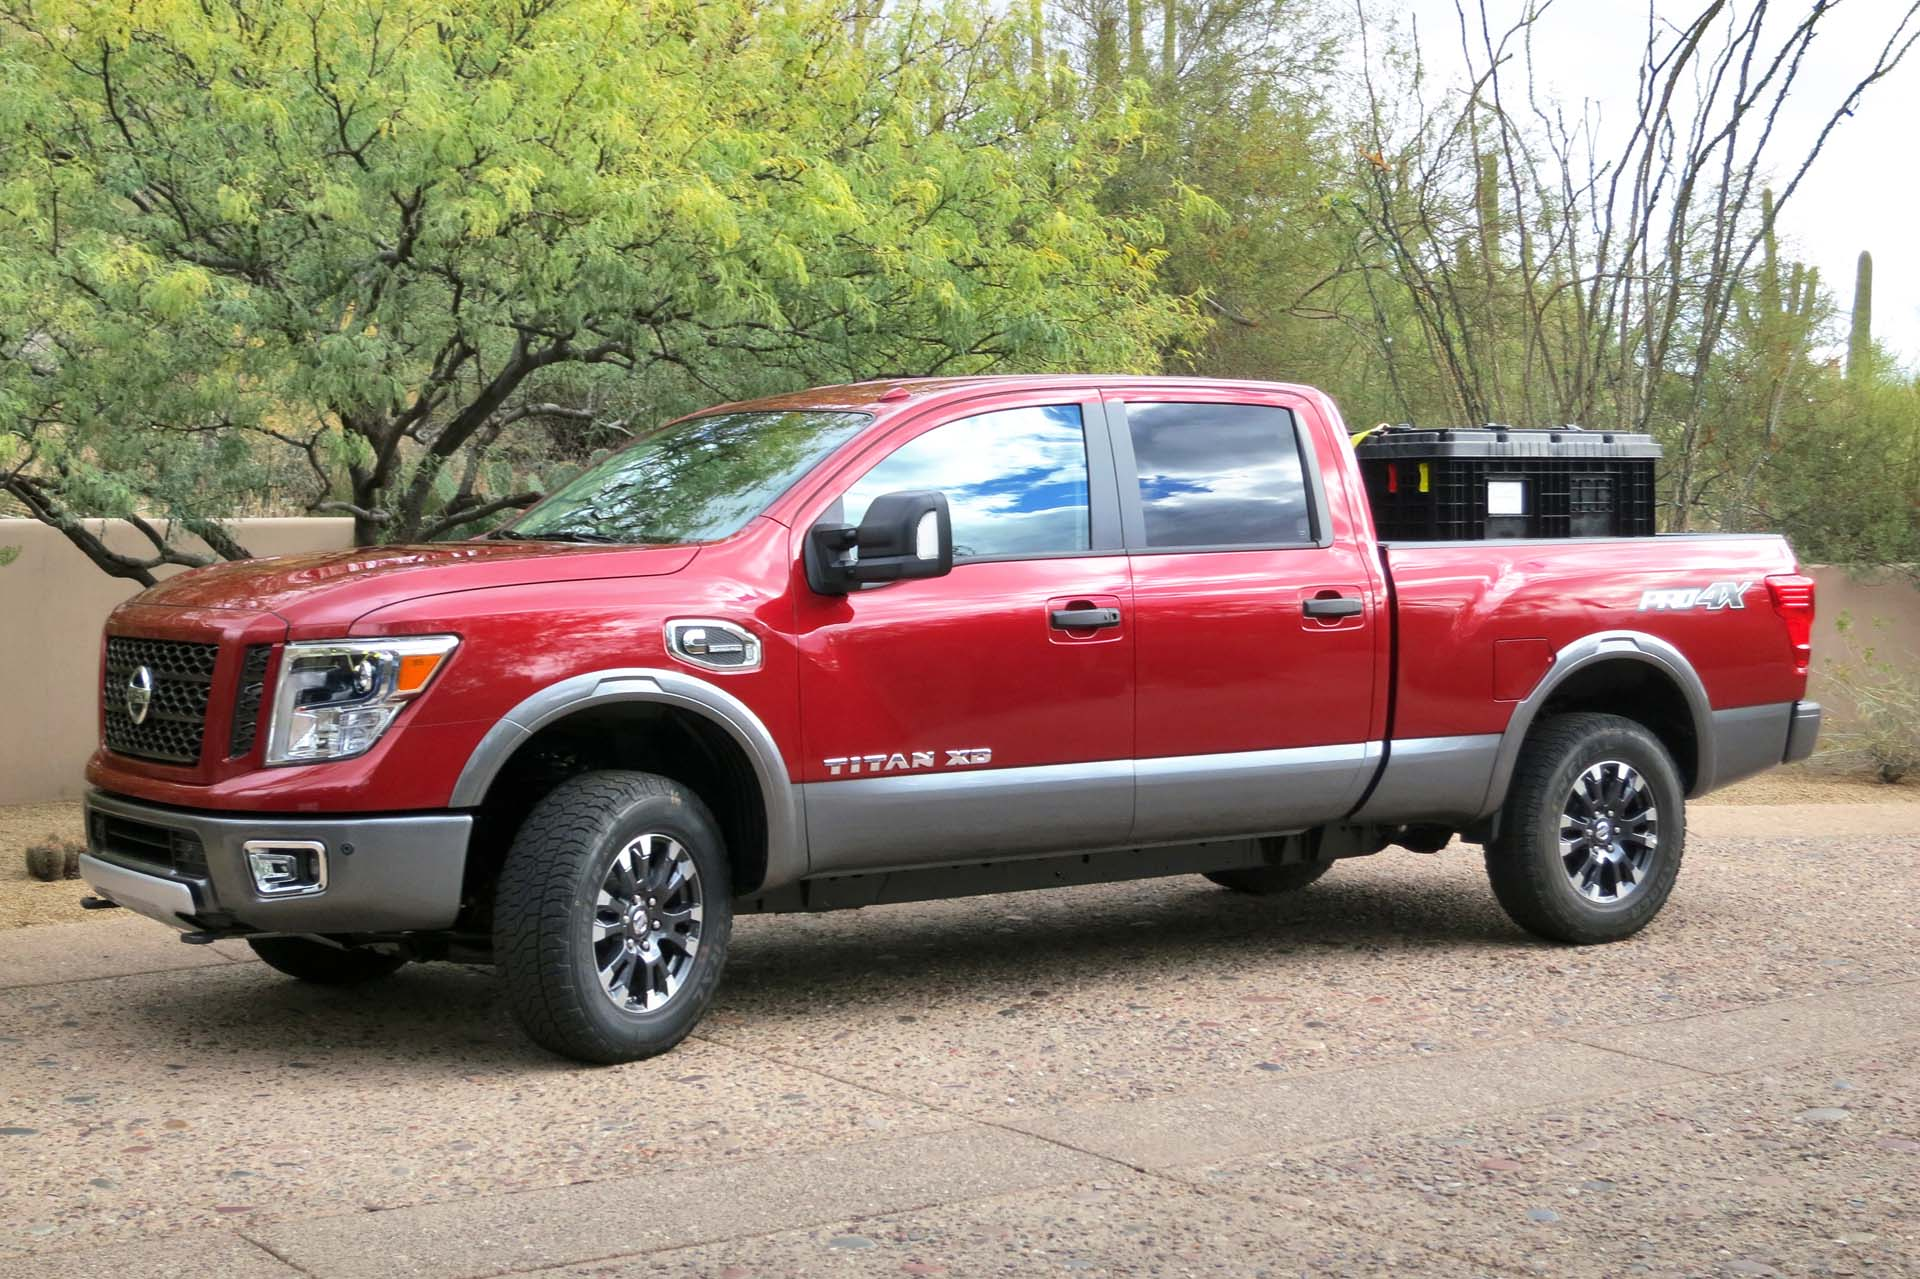 Heavy duty pickups are now posting big-rig tow ratings of just over 13,600 kg (30,000 lb). While the Titan XD's max towing capacity of 5,443 kg (12,300 lb) doesn't even come close to those numbers, at 100 lb more than the highest rated light duty truck (F-150), it does bridge the gap nicely. It also boasts such heavy duty features as engine braking, integrated trailer braking and sway control. Payload for the Crew Cab Titan XD 4x4 is 949 kg (2,093 lb).